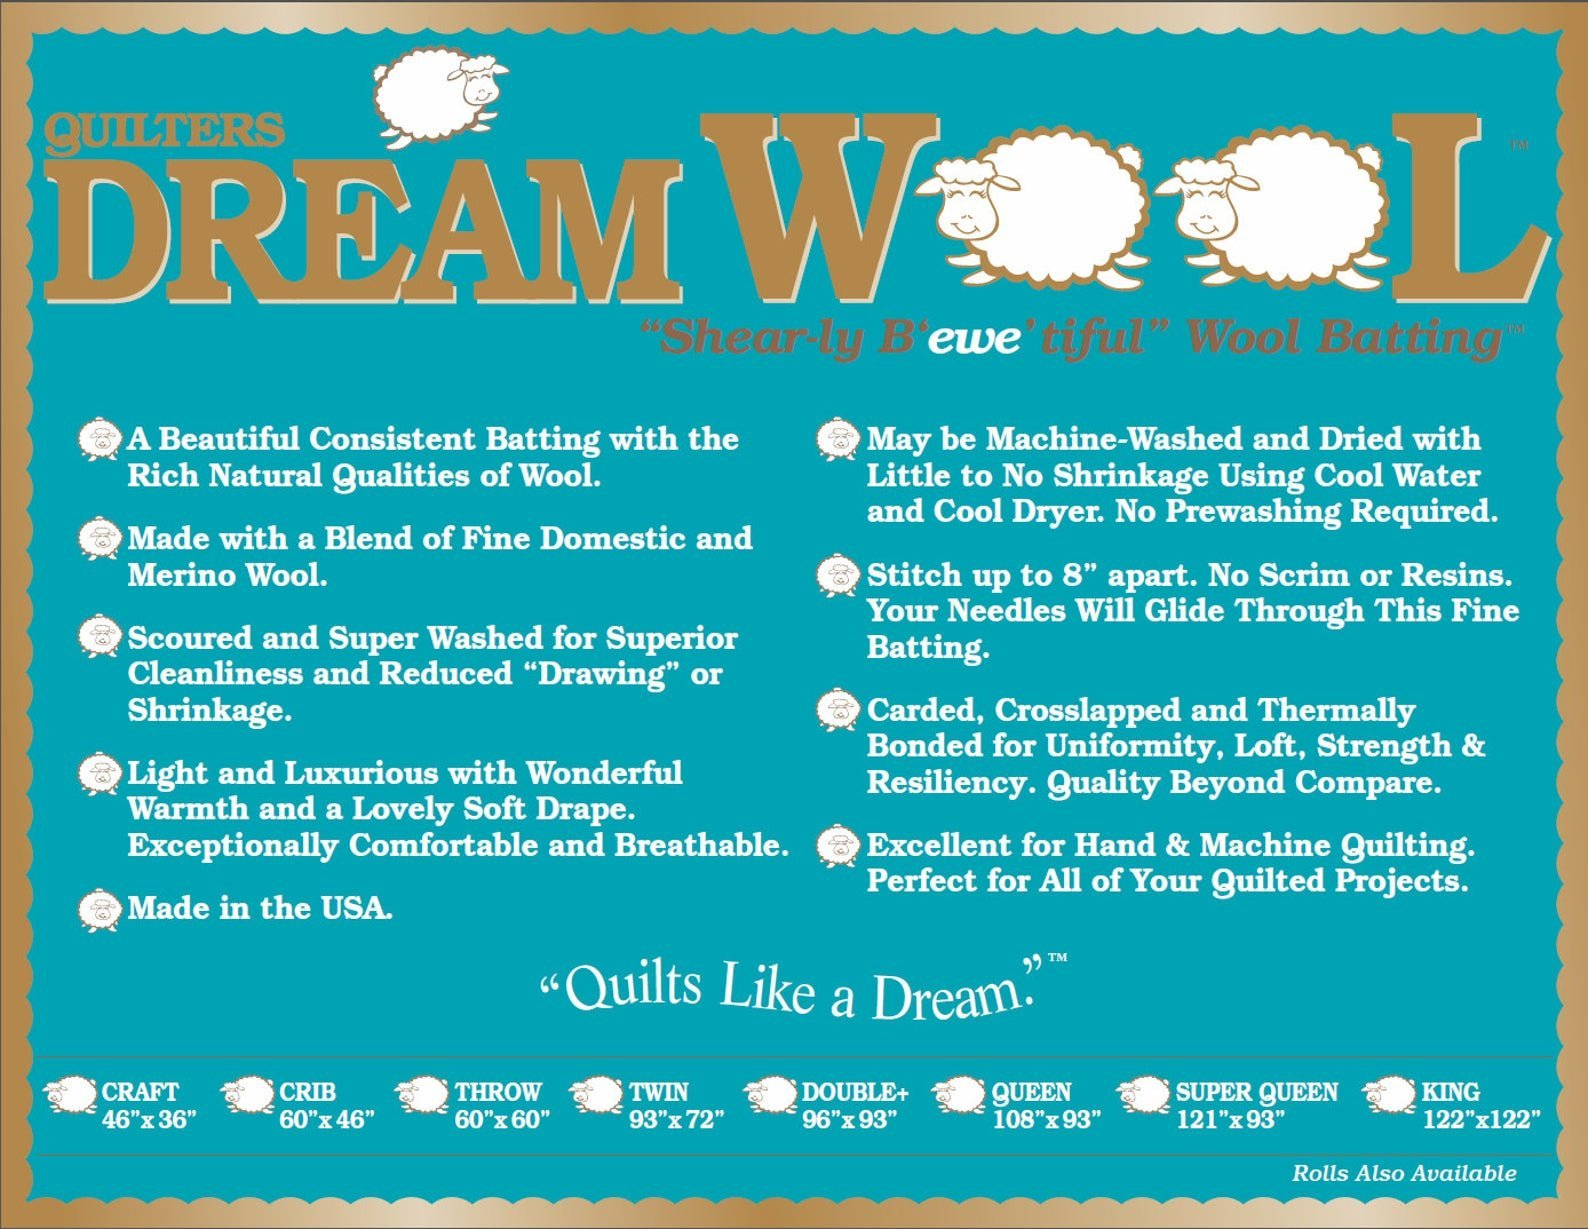 Quilters Dream Wool | Double Batting